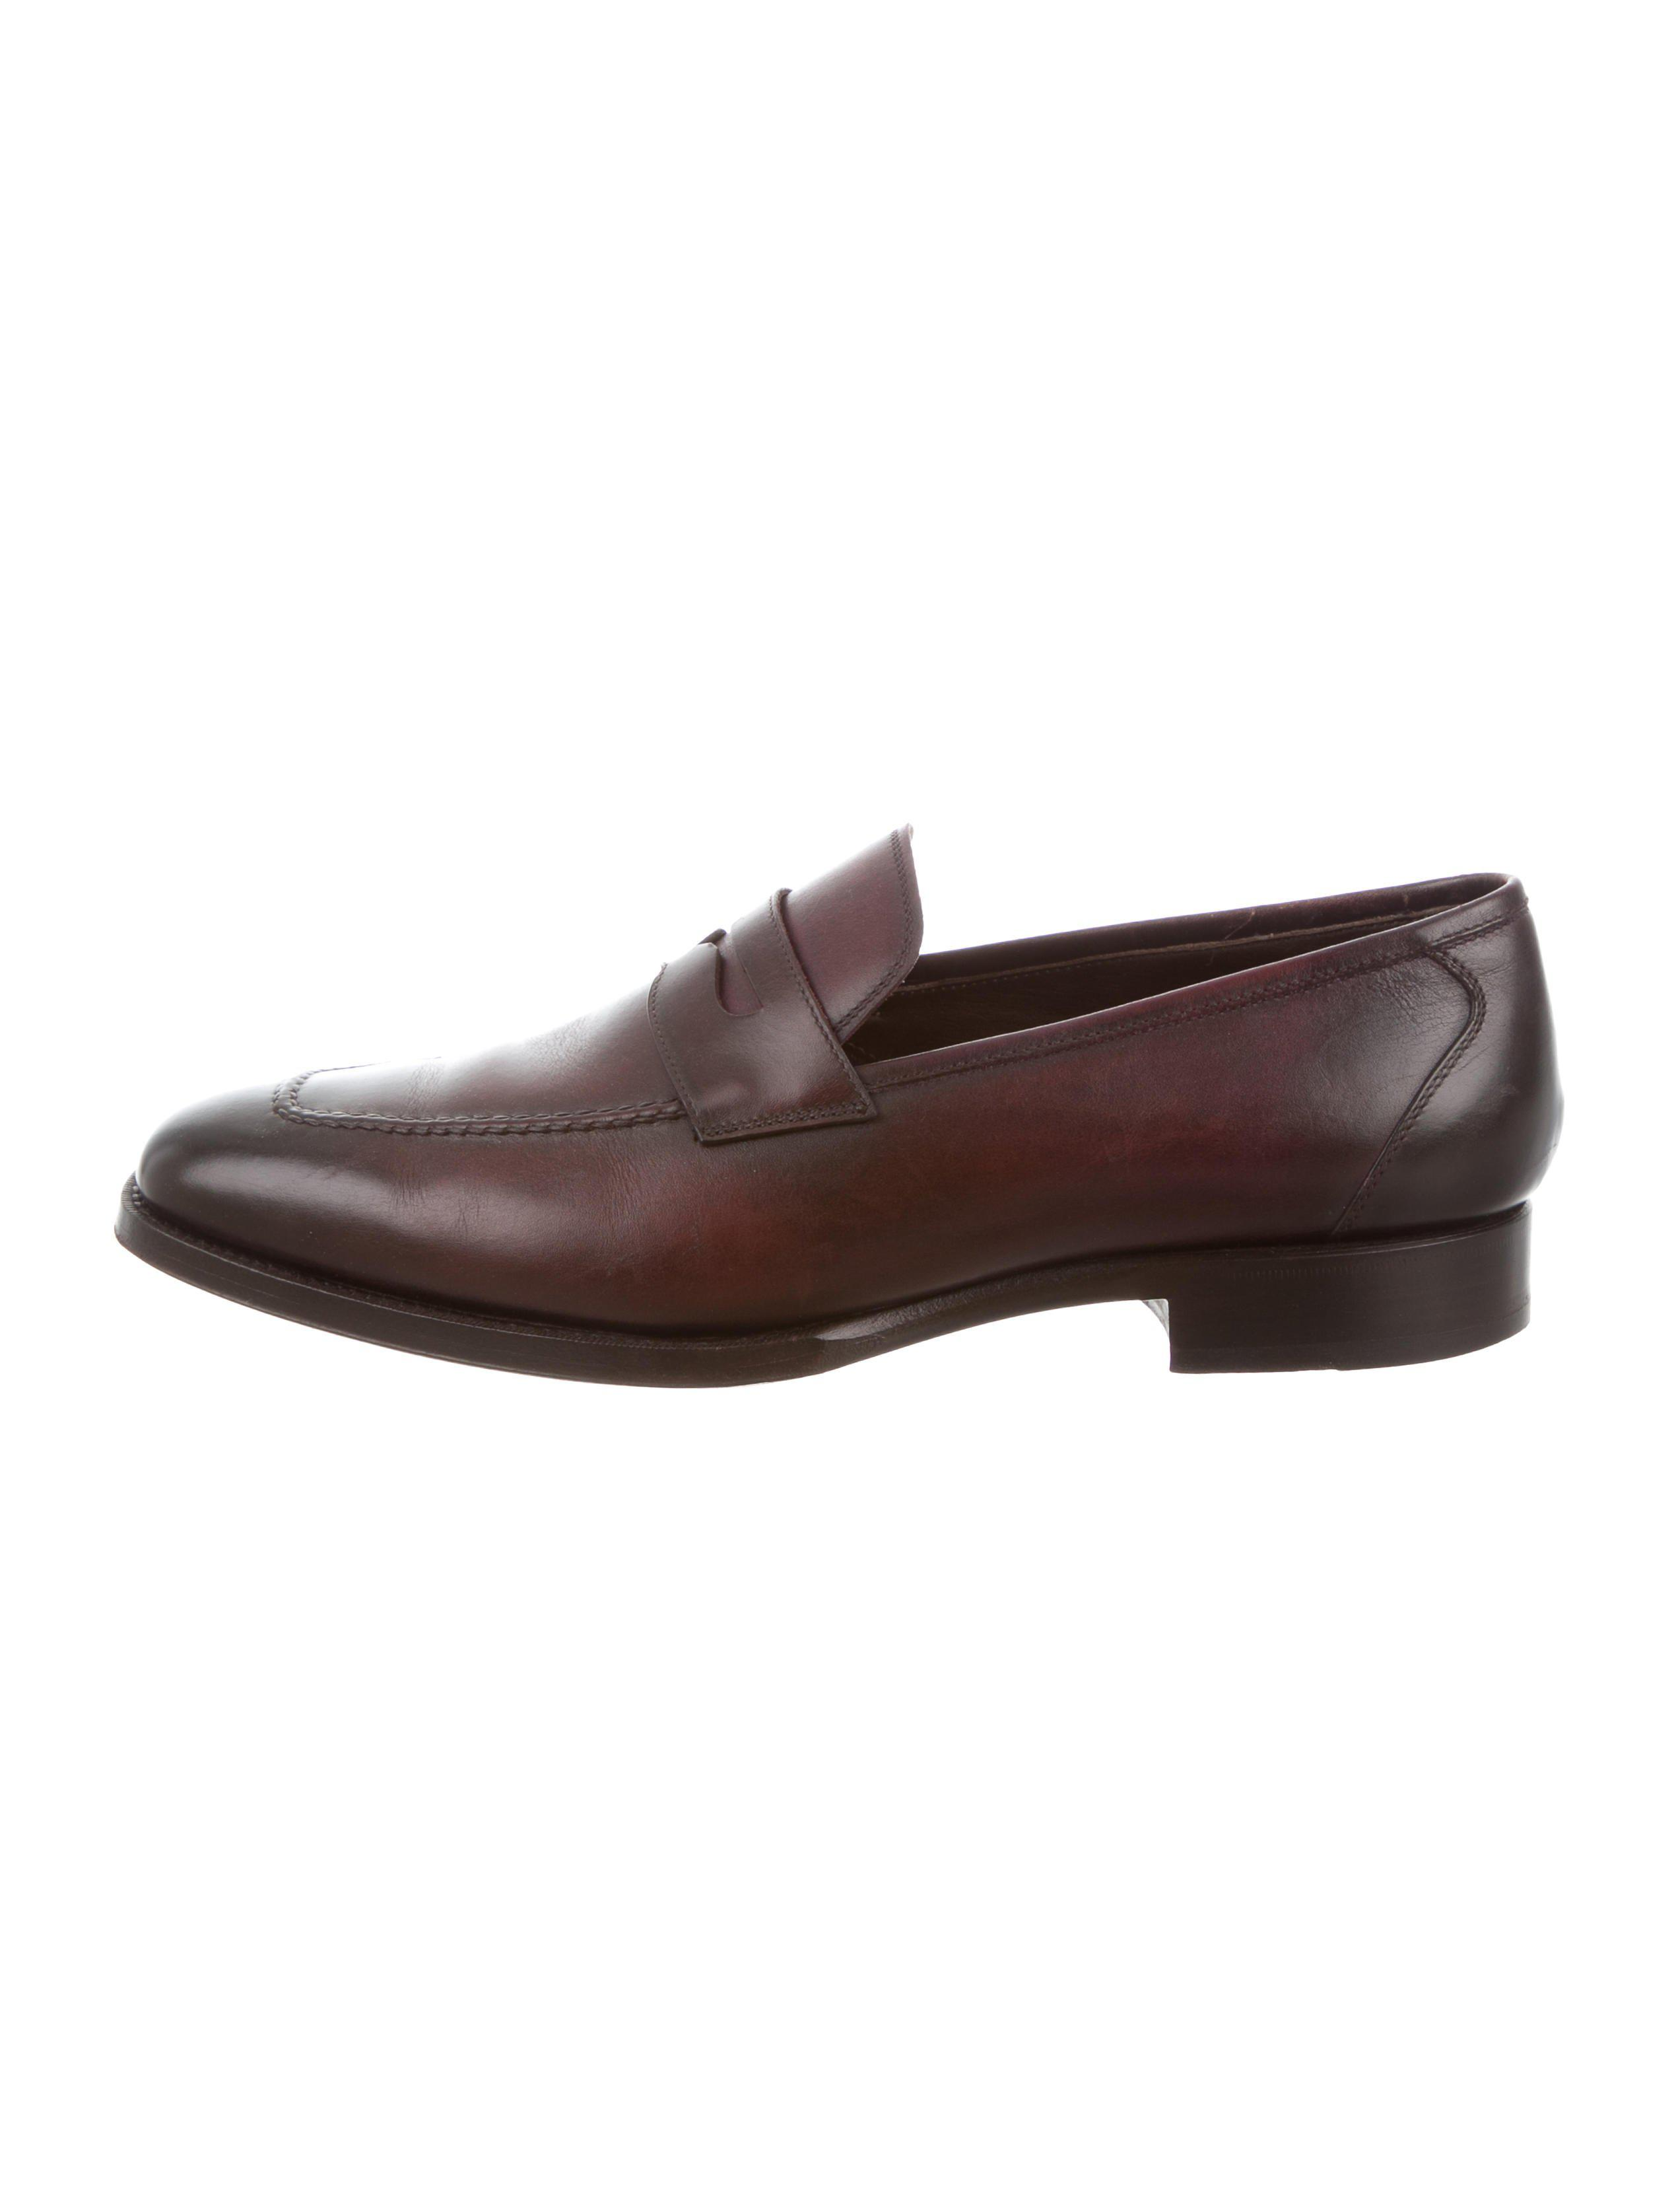 54748e600b6 Lyst - Tom Ford Leather Penny Loafers Brown in Brown for Men